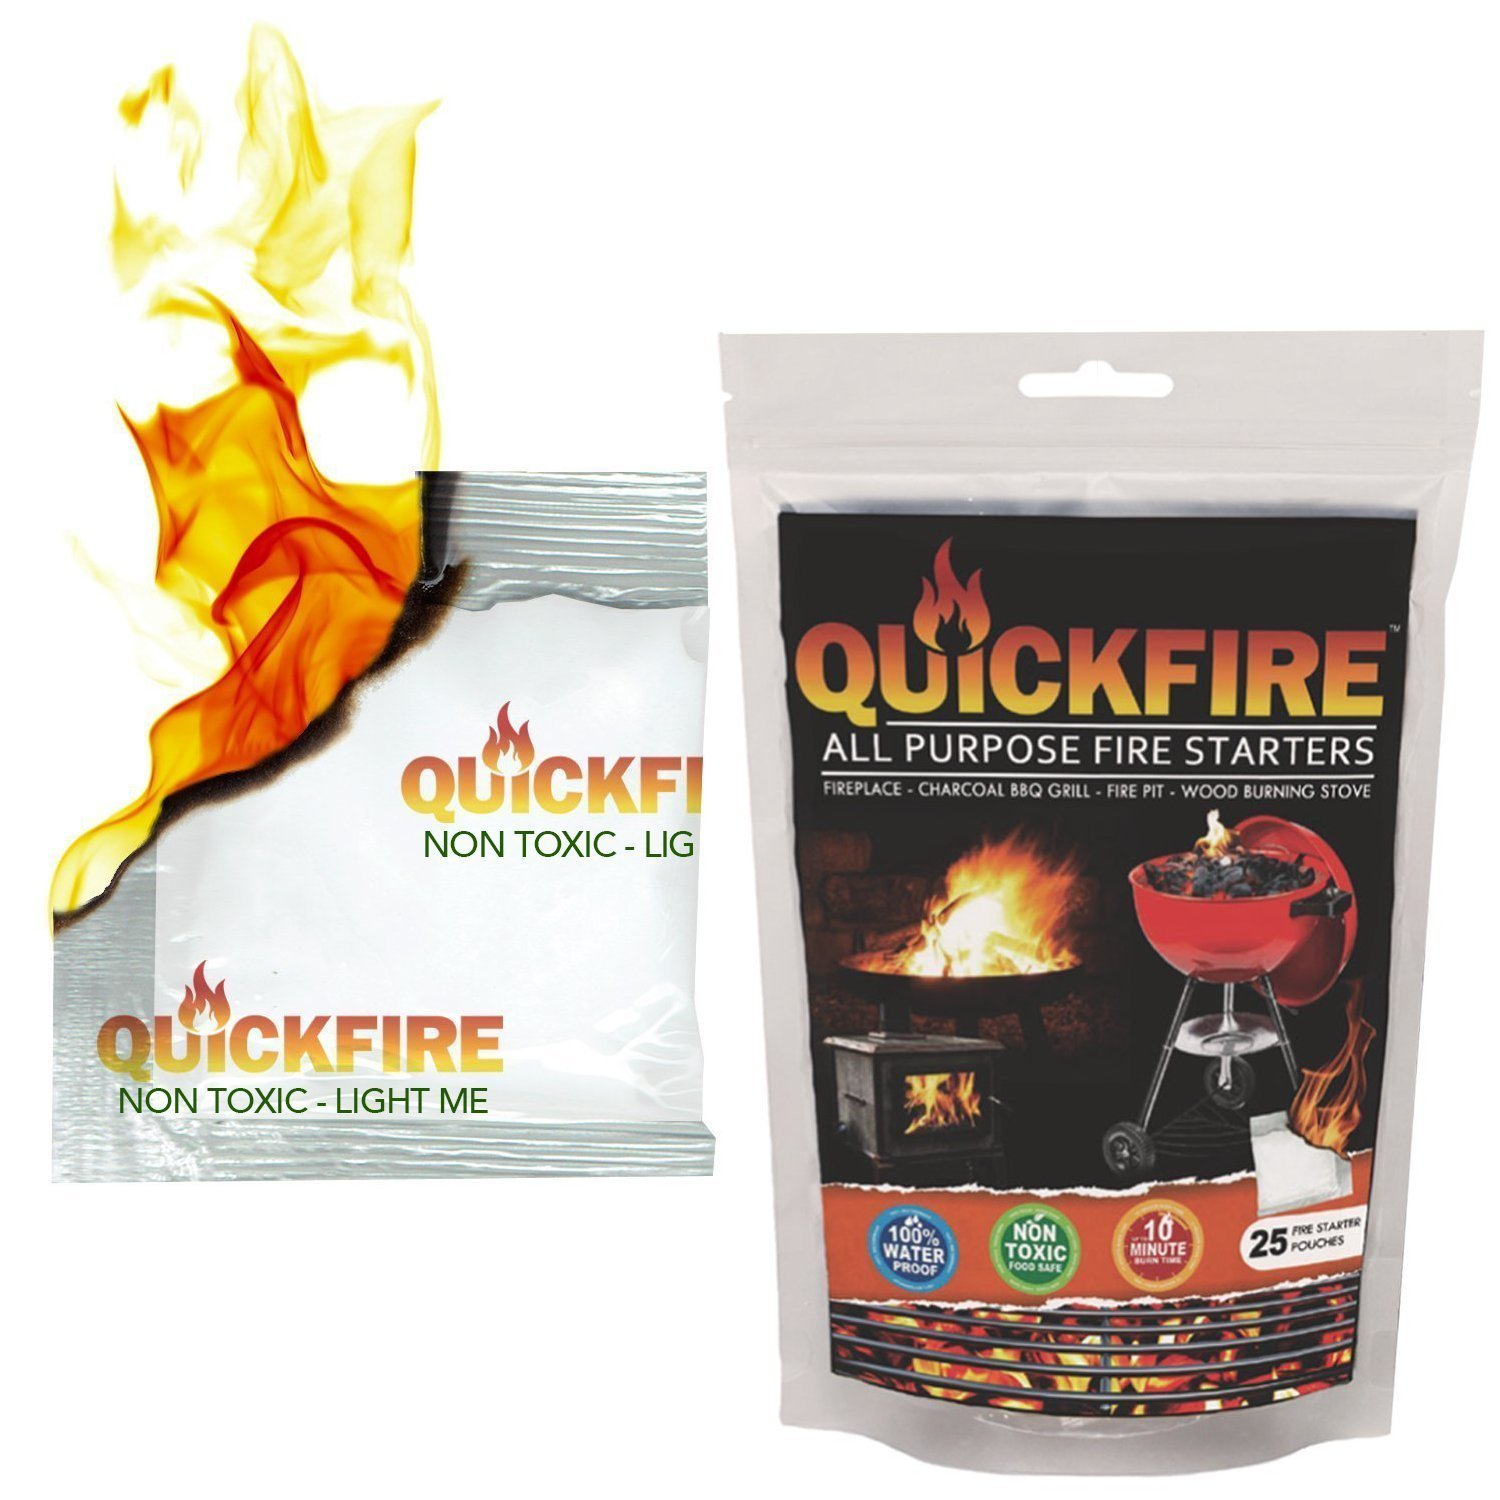 QuickFire, Instant Fire Starters. Voted #1 Camping And Charcoal BBQ Fire Starter of 2016. Waterproof, Odorless And... by Quickfire